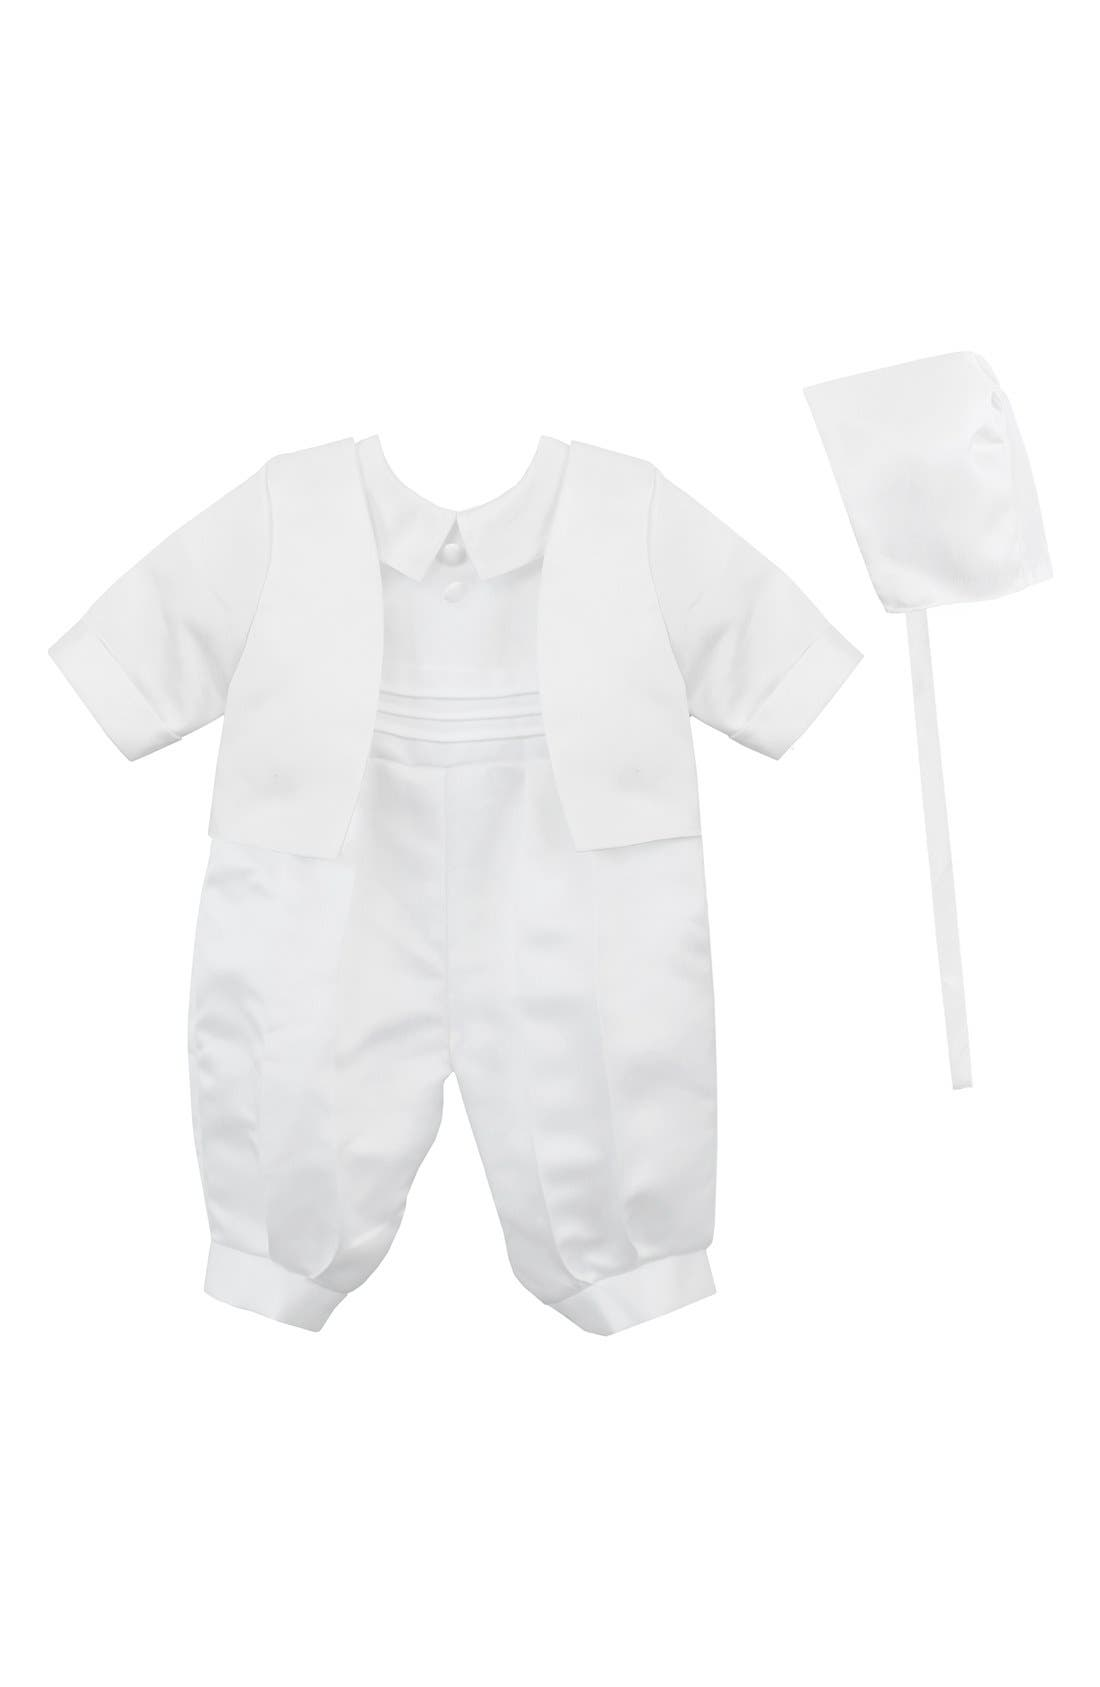 C.I. CASTRO & CO. Christening Romper & Cap, Main, color, 100